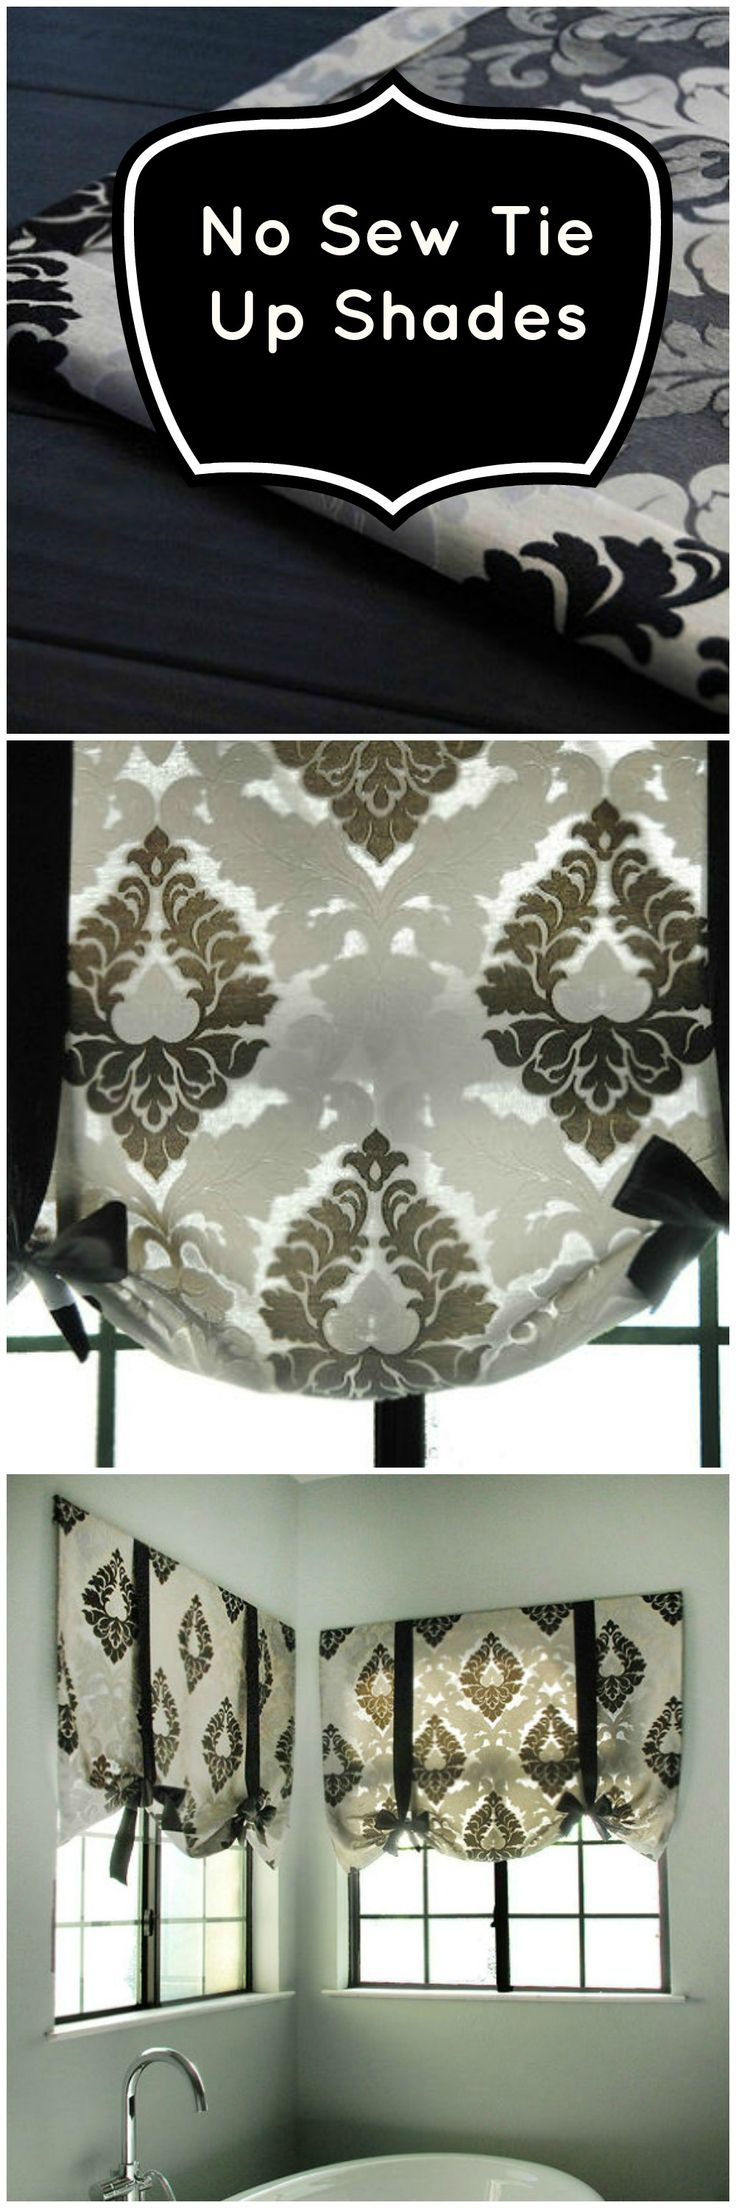 Great curtain/shade idea for master bath | No sew tie up shades (gorgeous and EASY!)